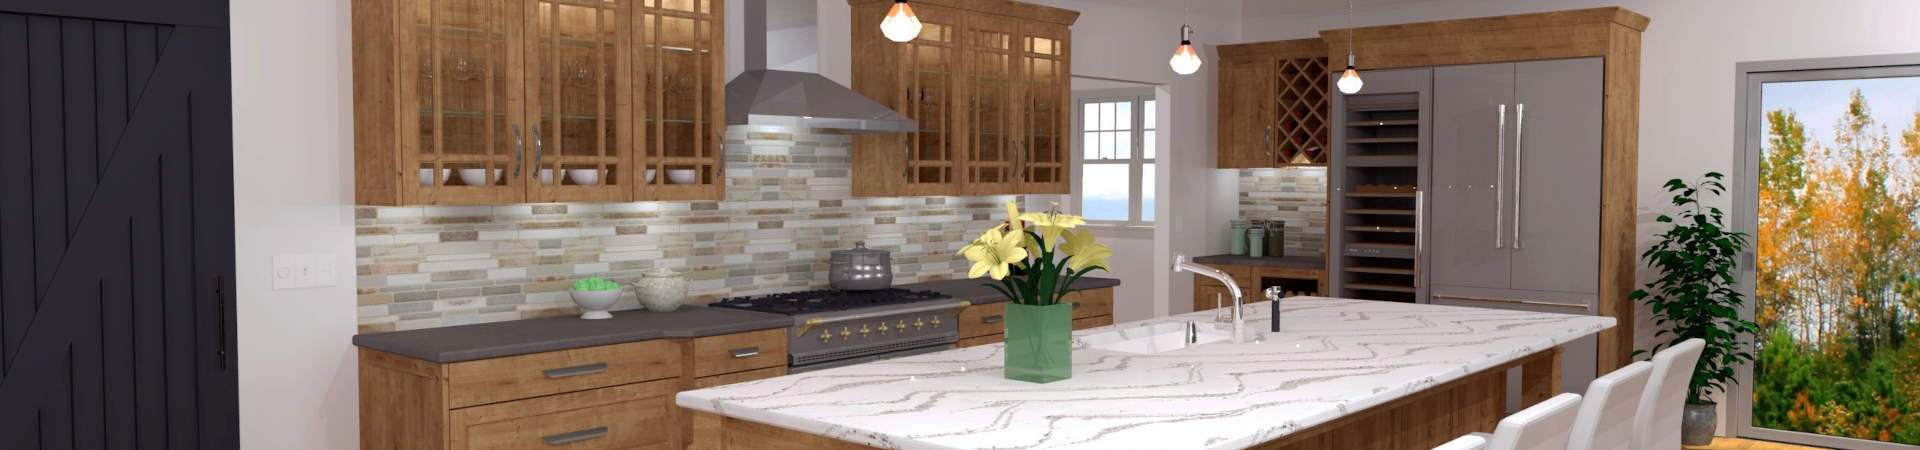 We have the right kitchen design software solution for everyone: for your kitchen showroom, autokitchen is the ideal tool for selling kitchen cabinets and designs.